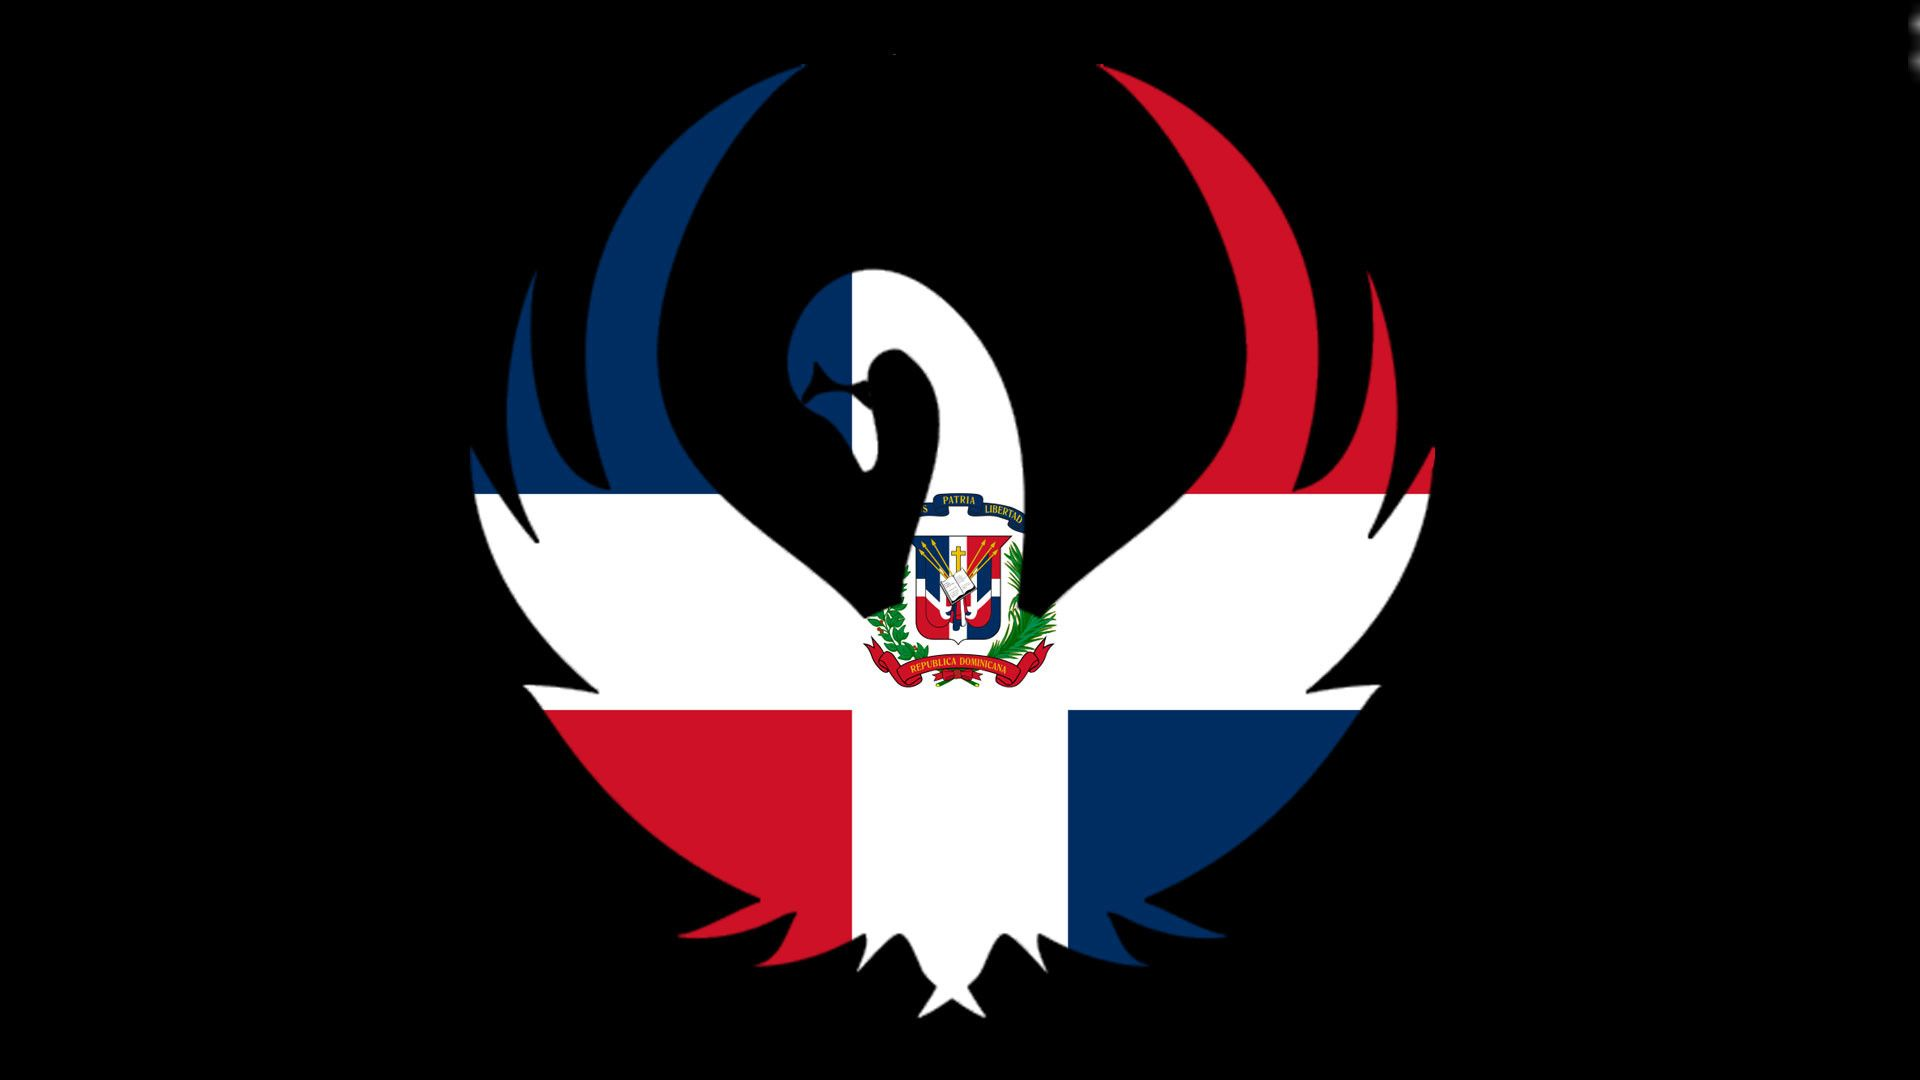 1920x1080 Dominican Flag Wallpaper (69+ images)